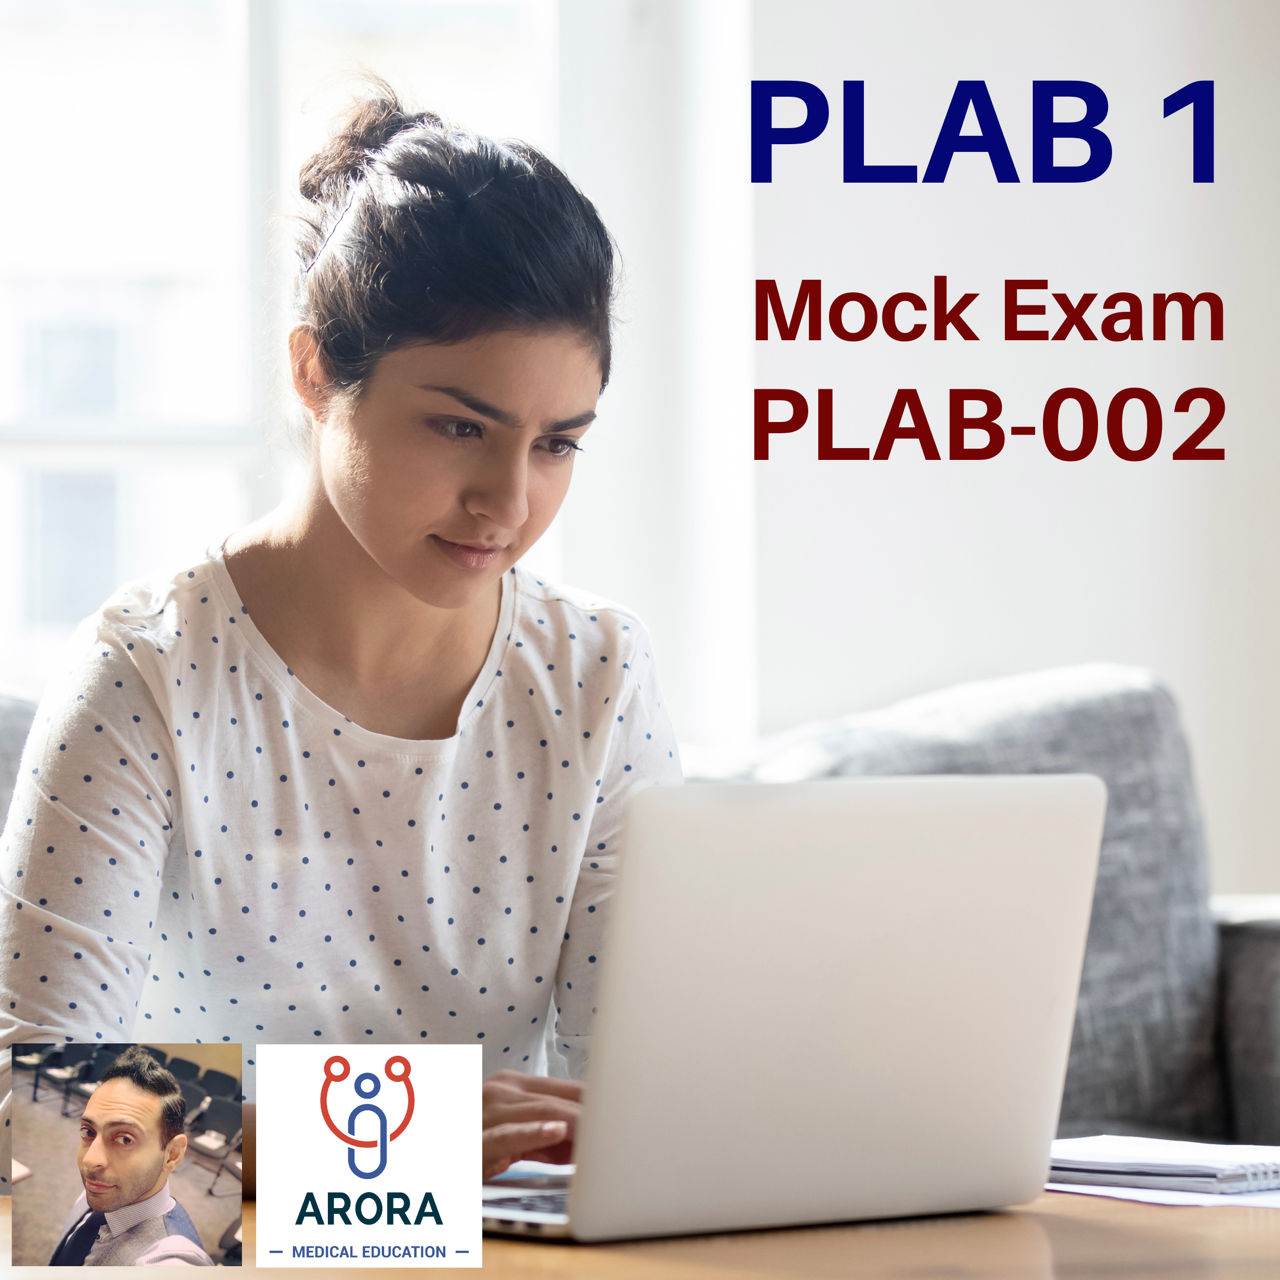 plab1 02 - MRCGP CSA, AKT and PLAB Exam Courses and Online Webinars - Arora Medical Education